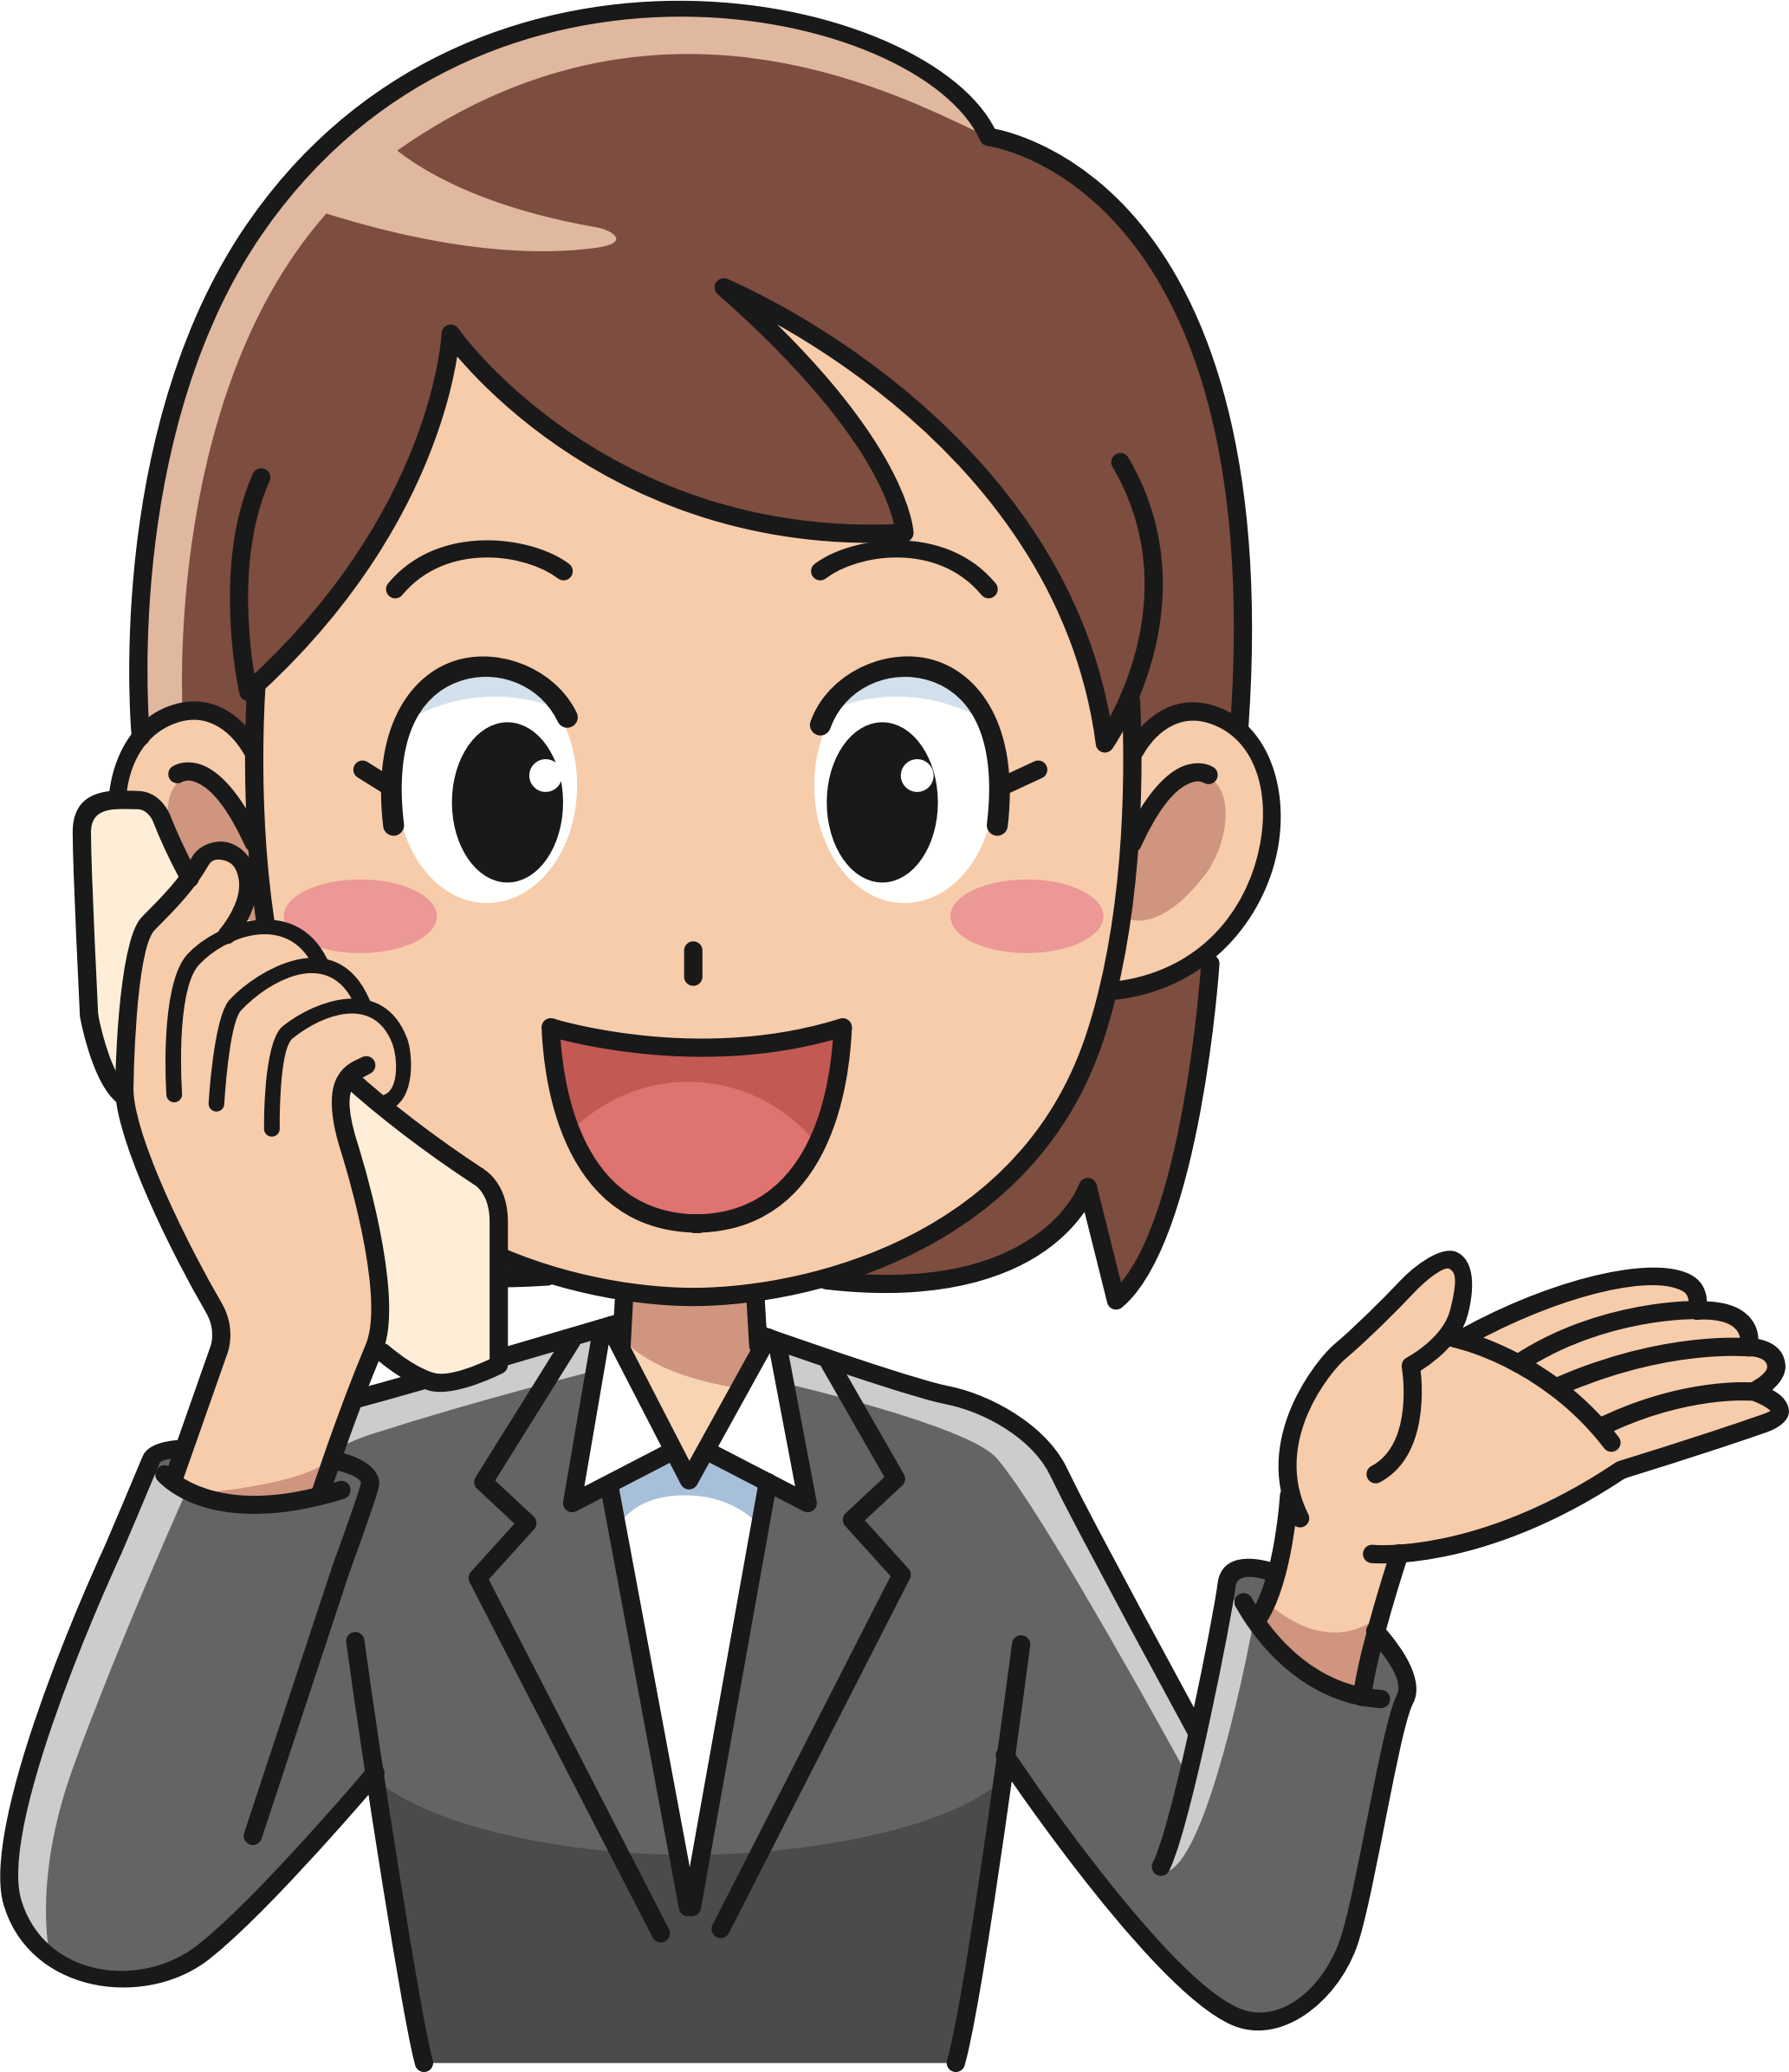 Phone clipart person, Phone person Transparent FREE for.